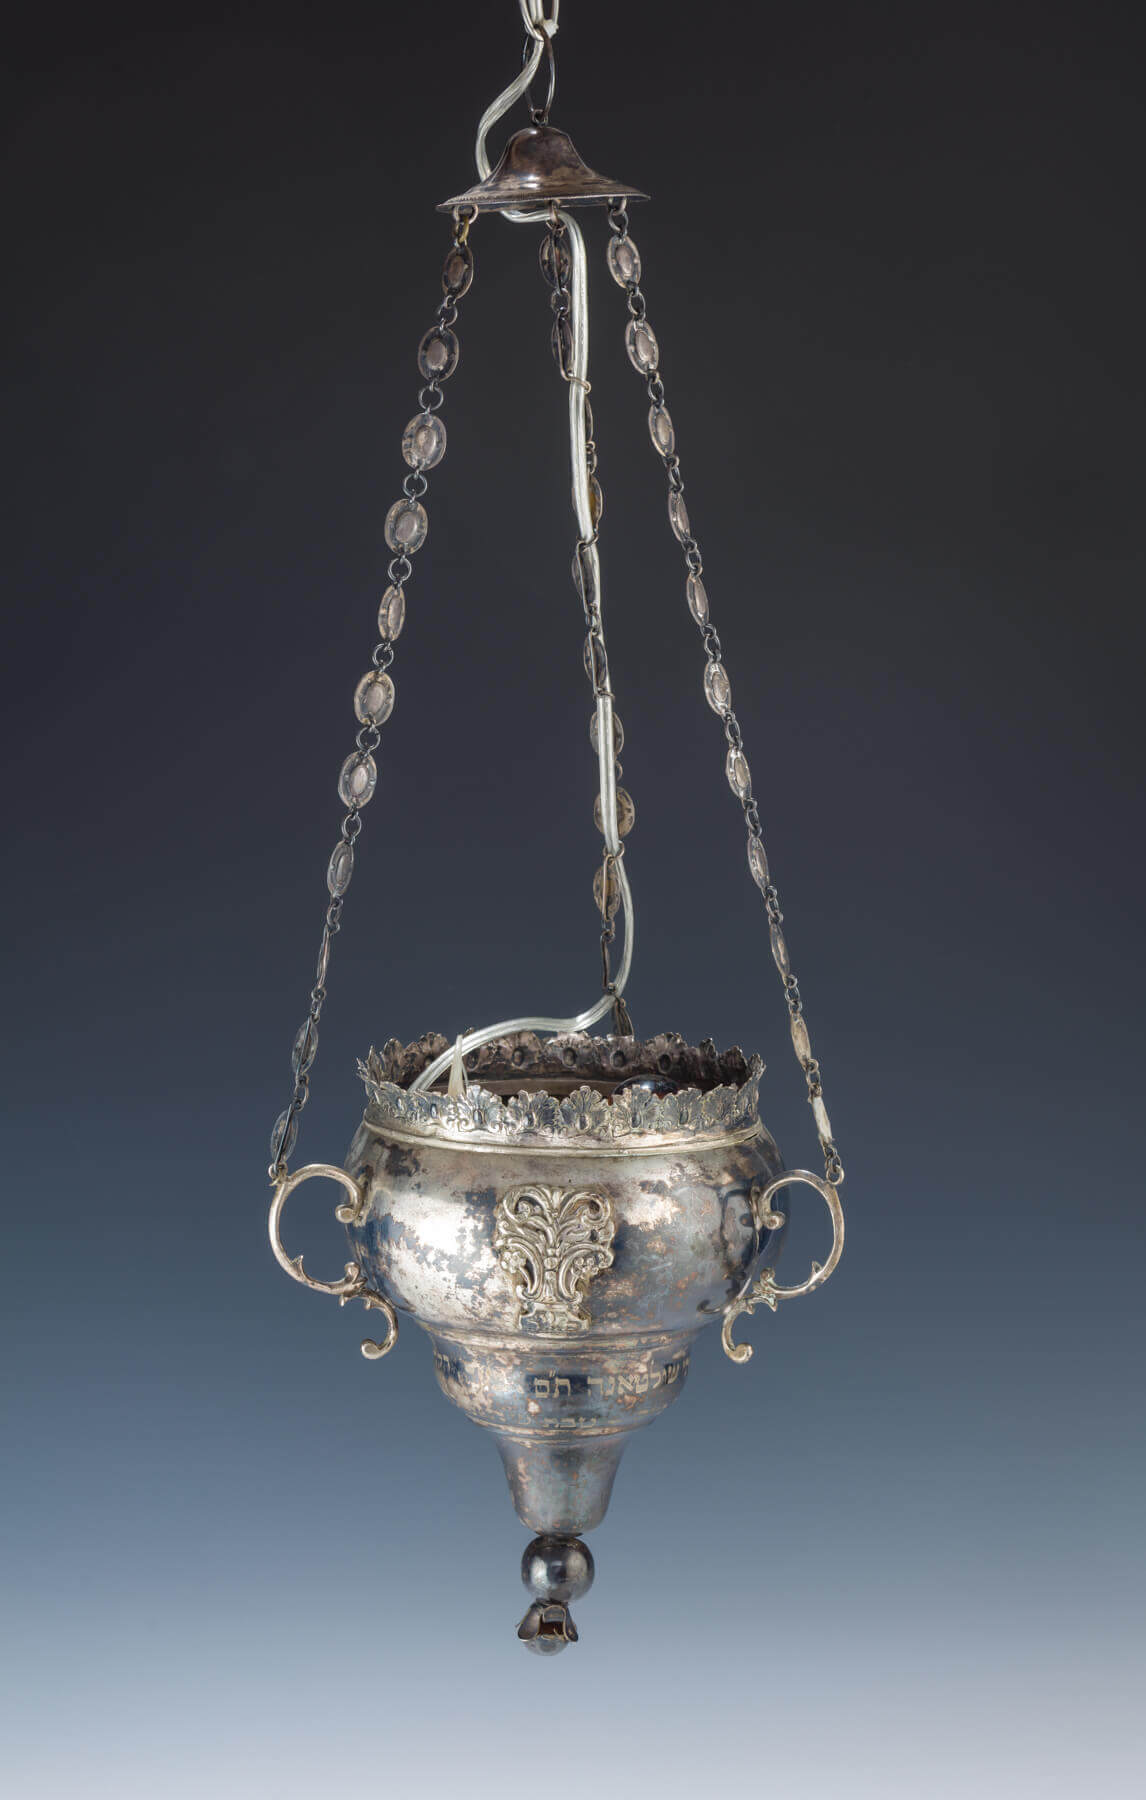 053. A LARGE SILVER NER TAMID LAMP